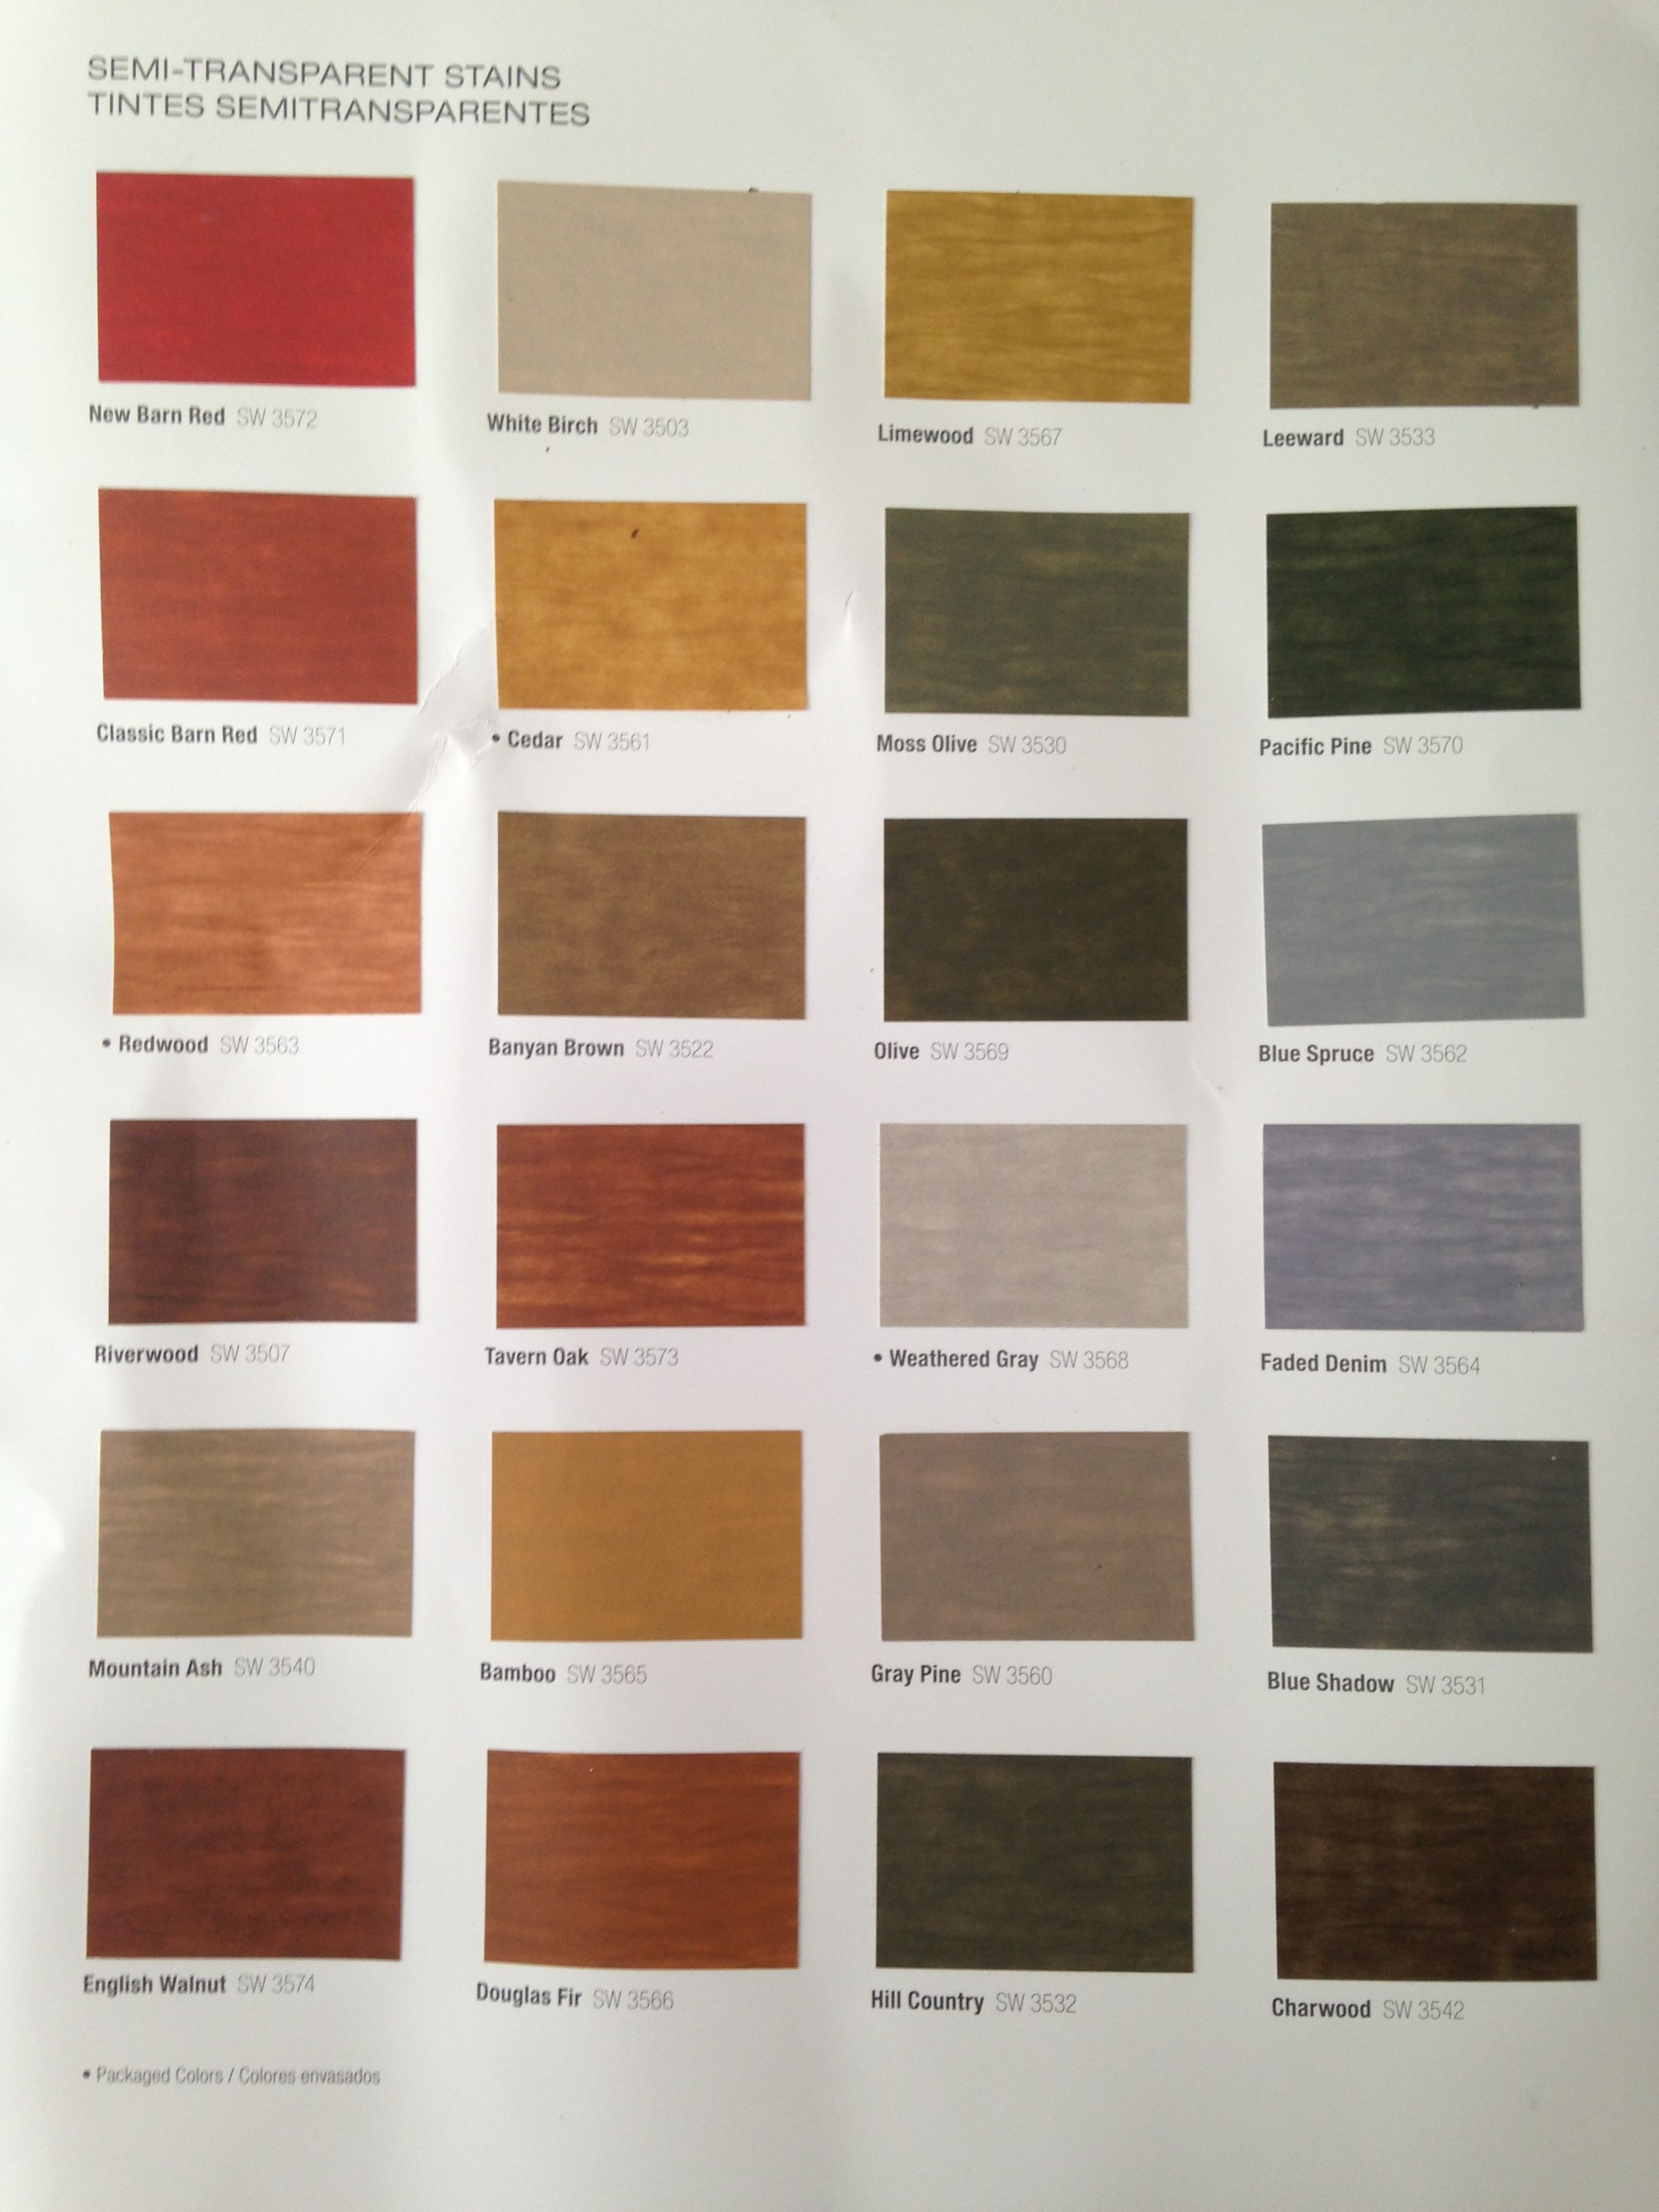 sherwin williams semi transparent stains for deck fence paints stains pinterest semi